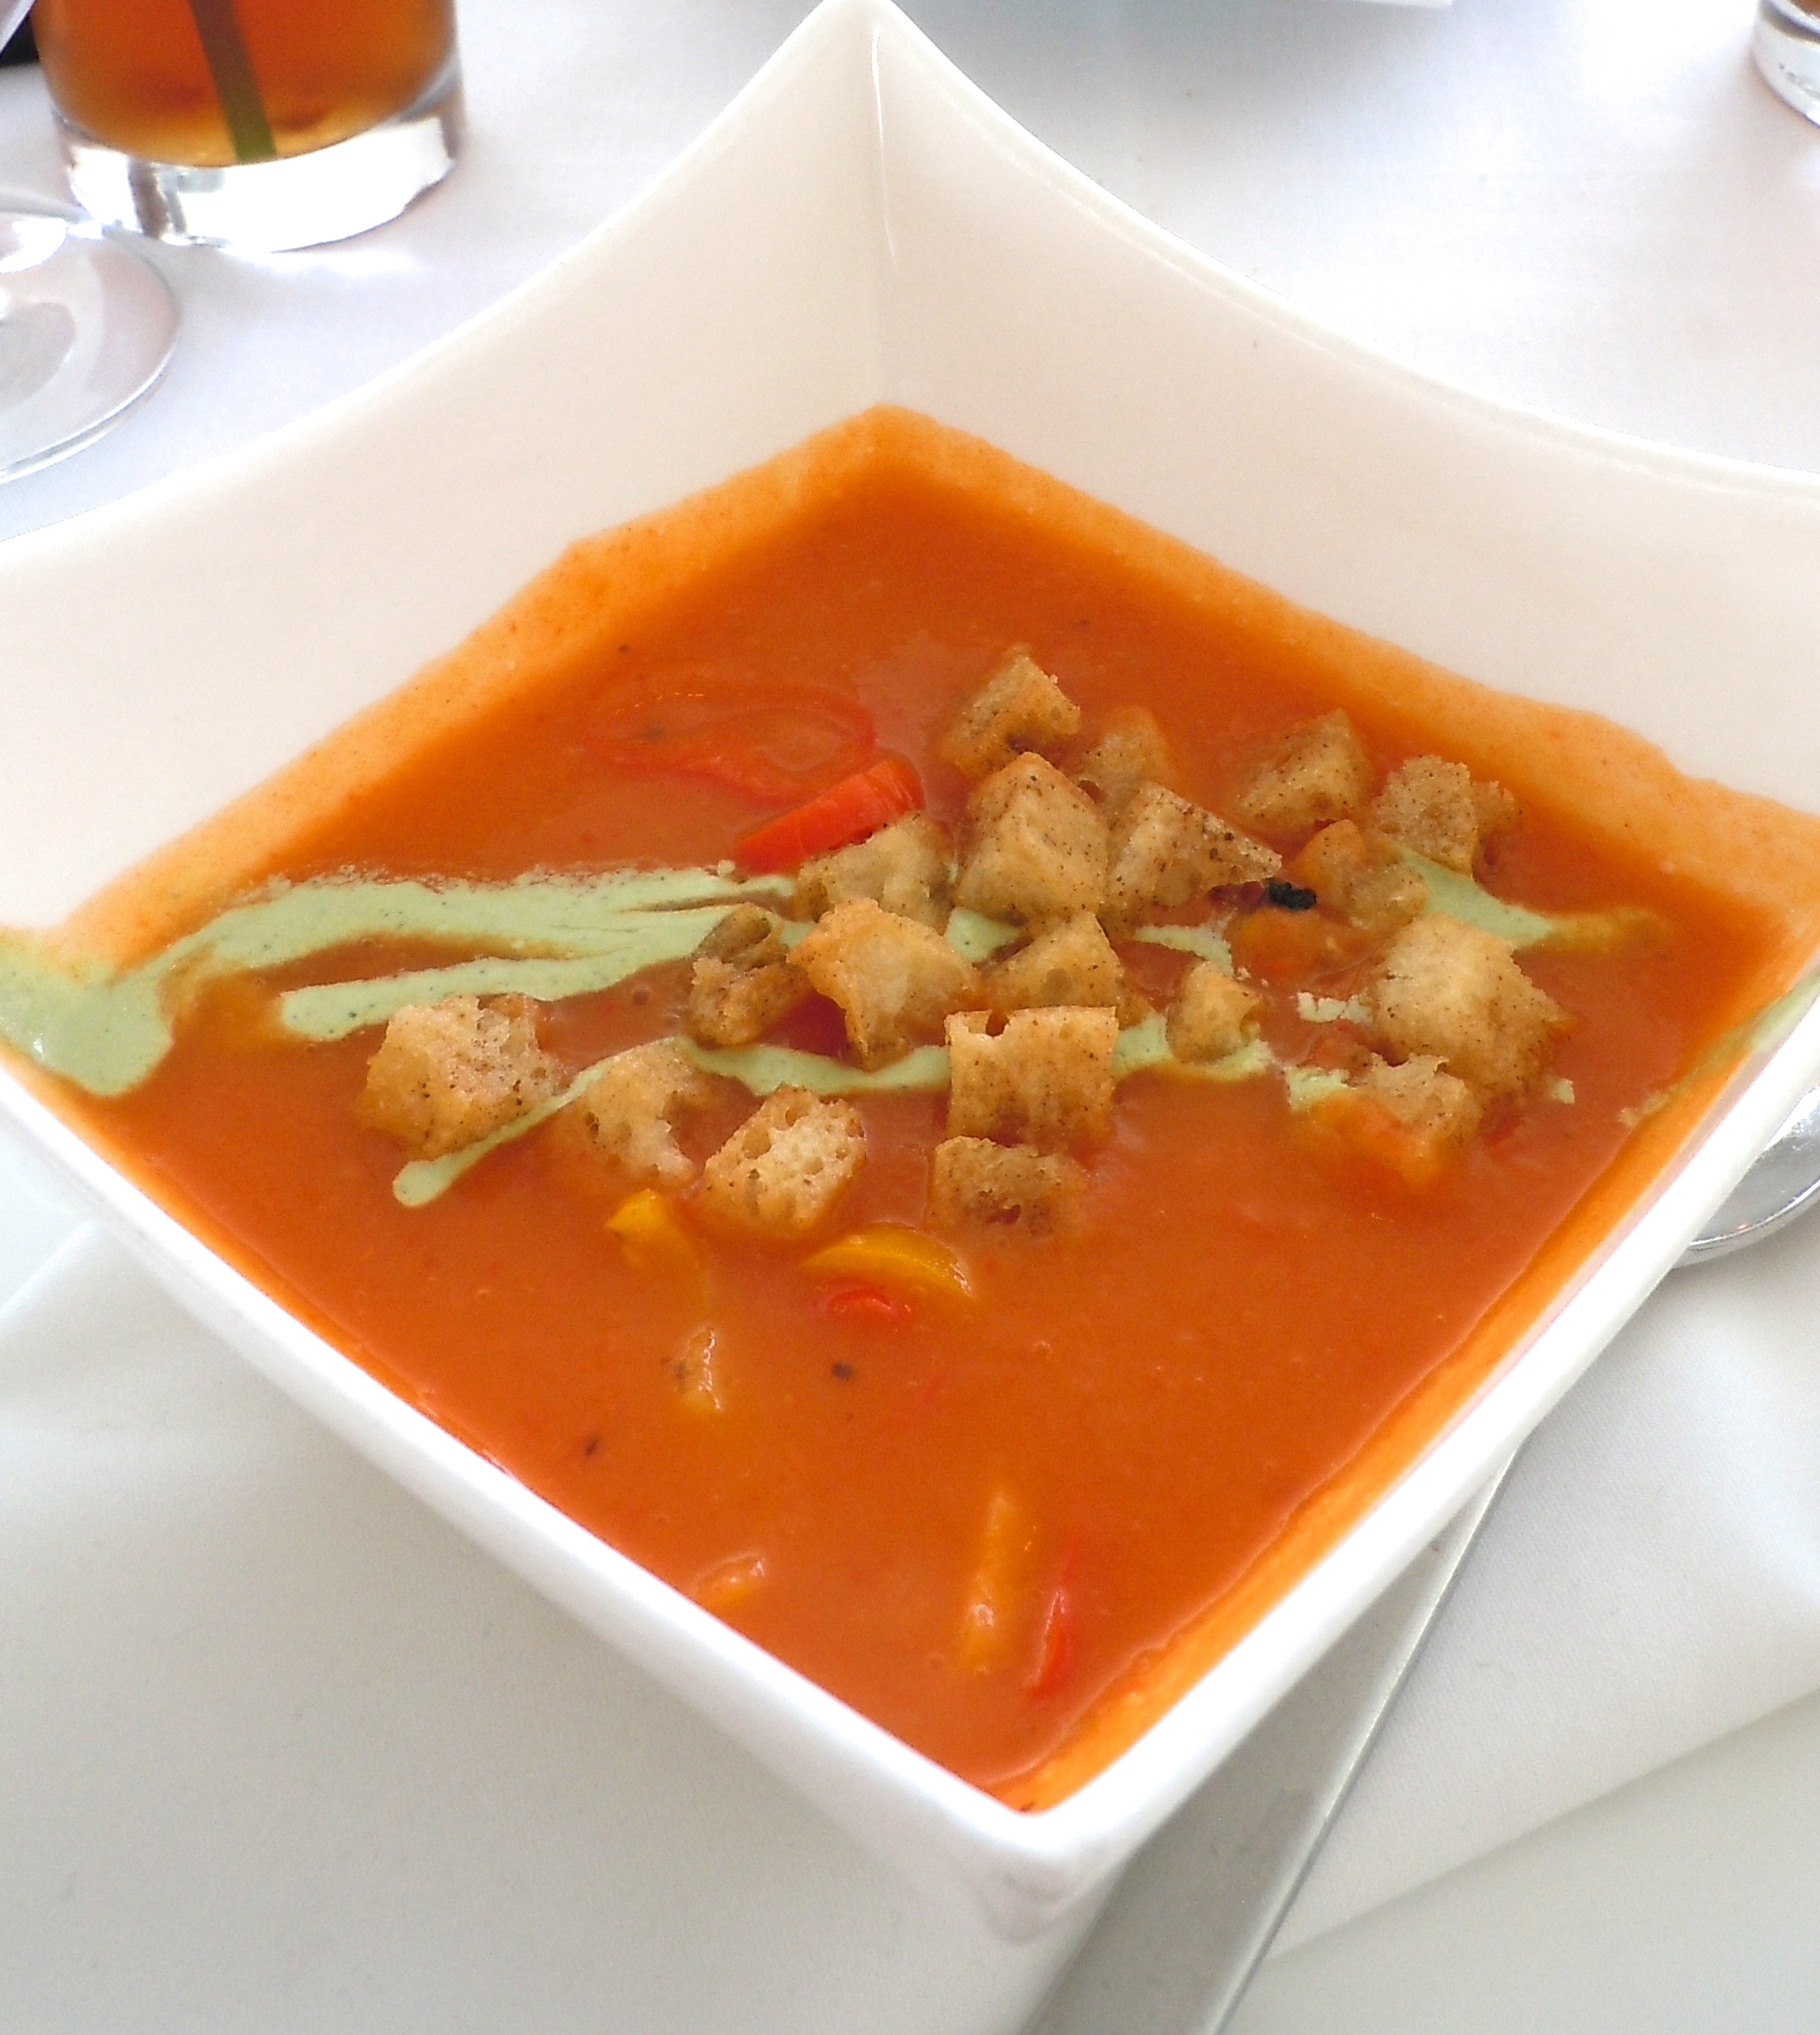 Roasted Red Pepper Soup with Toasted Croutons